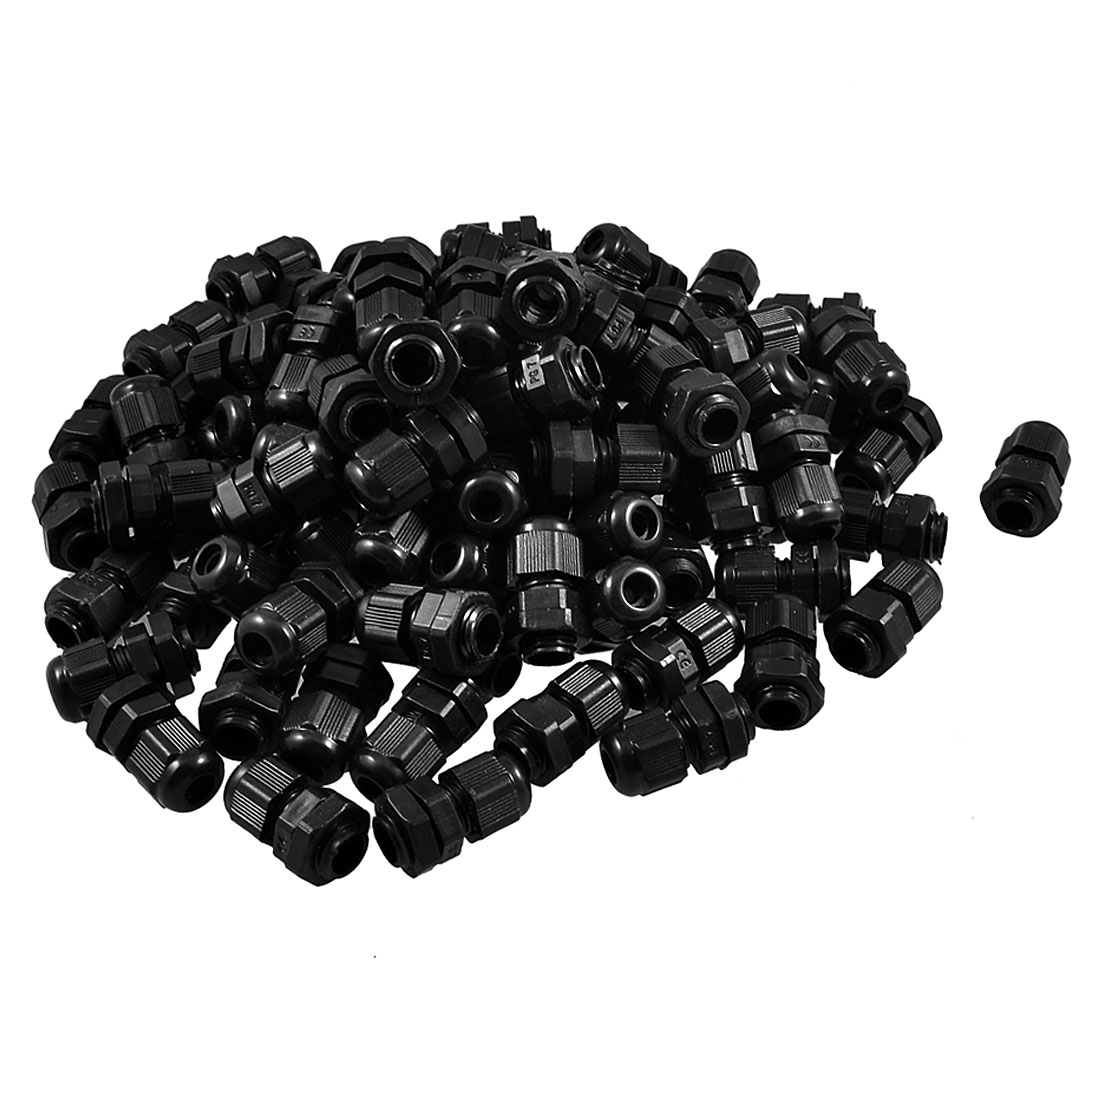 100 Pieces PG7 Black Plastic Waterproof Connector Gland 3-6.5mm Dia Cable